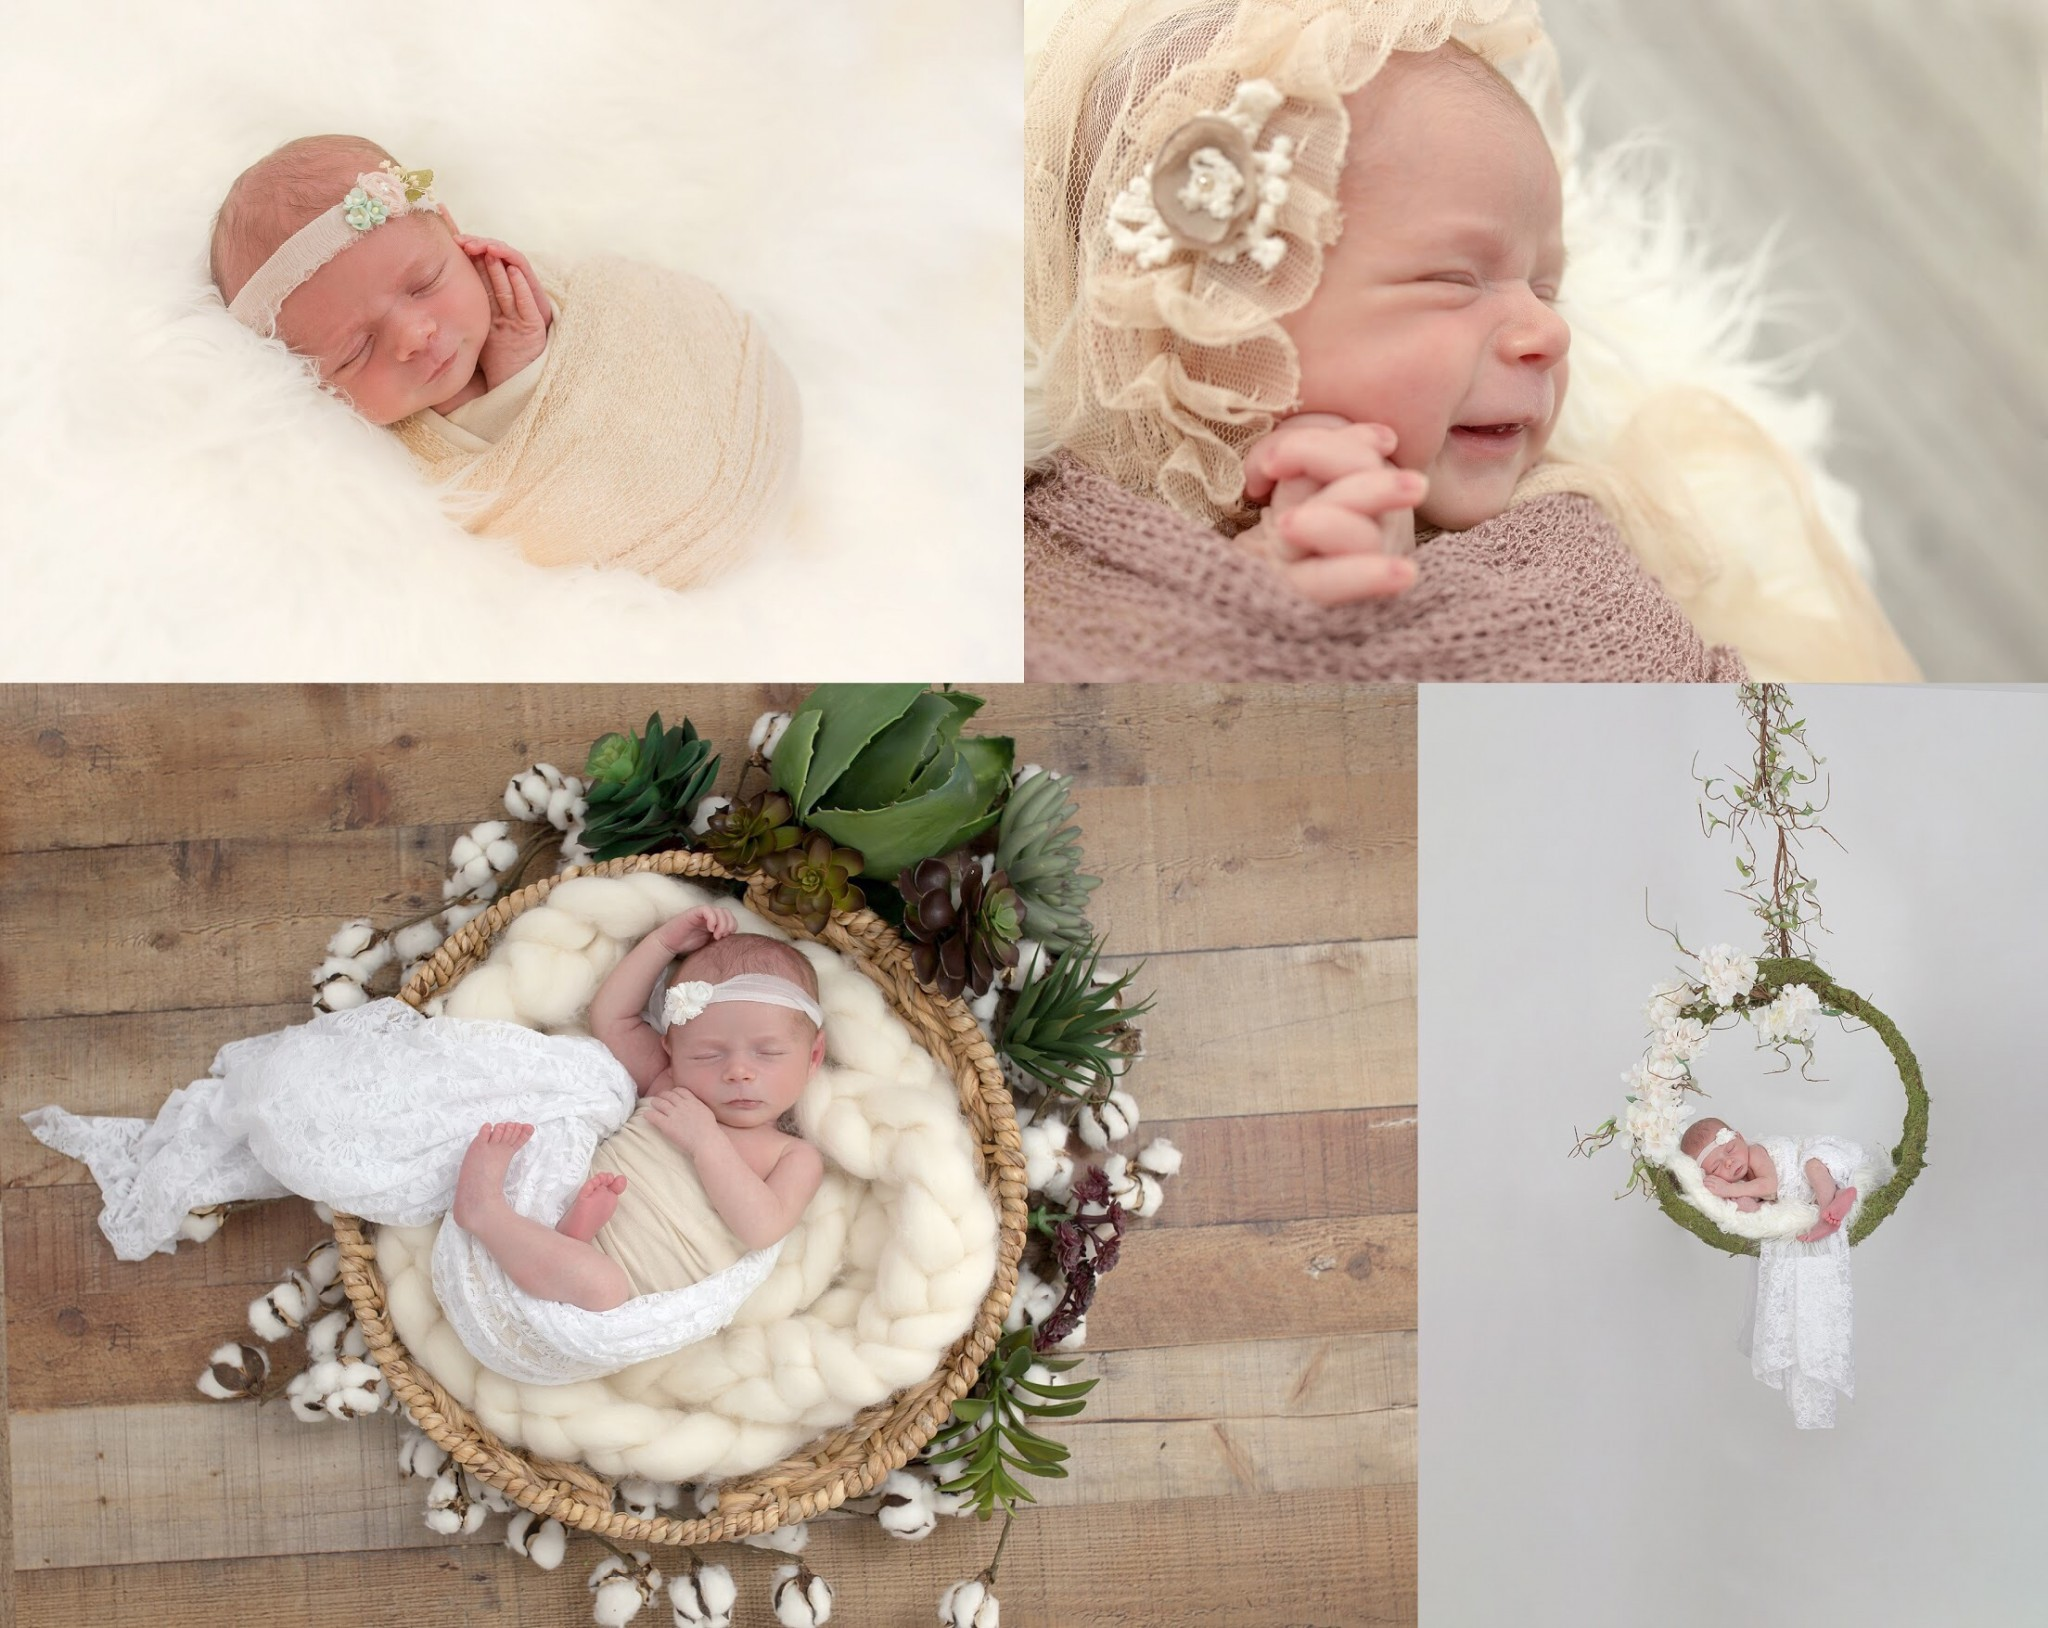 customized newborn portrait session to compliment nursery decor